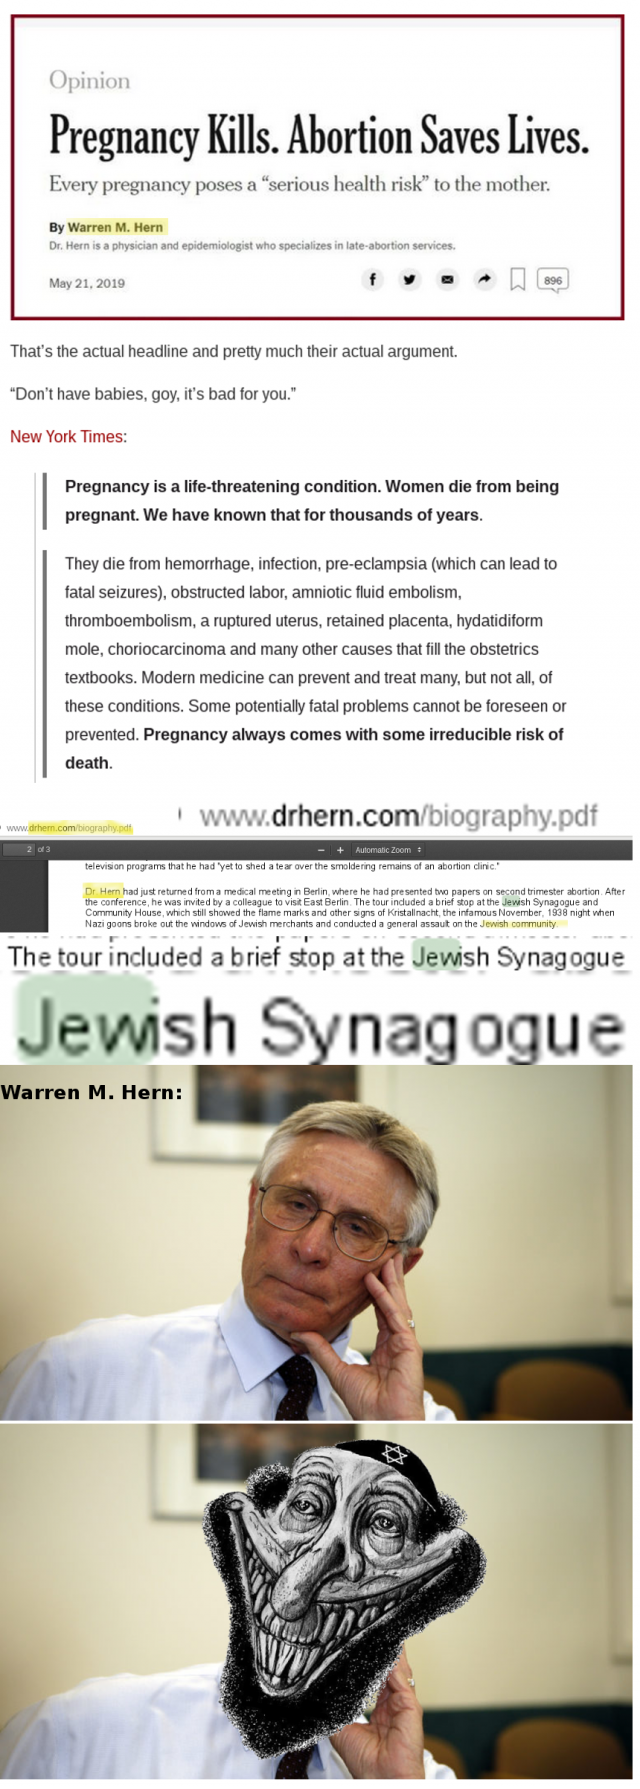 Warren-M-Hern-jew